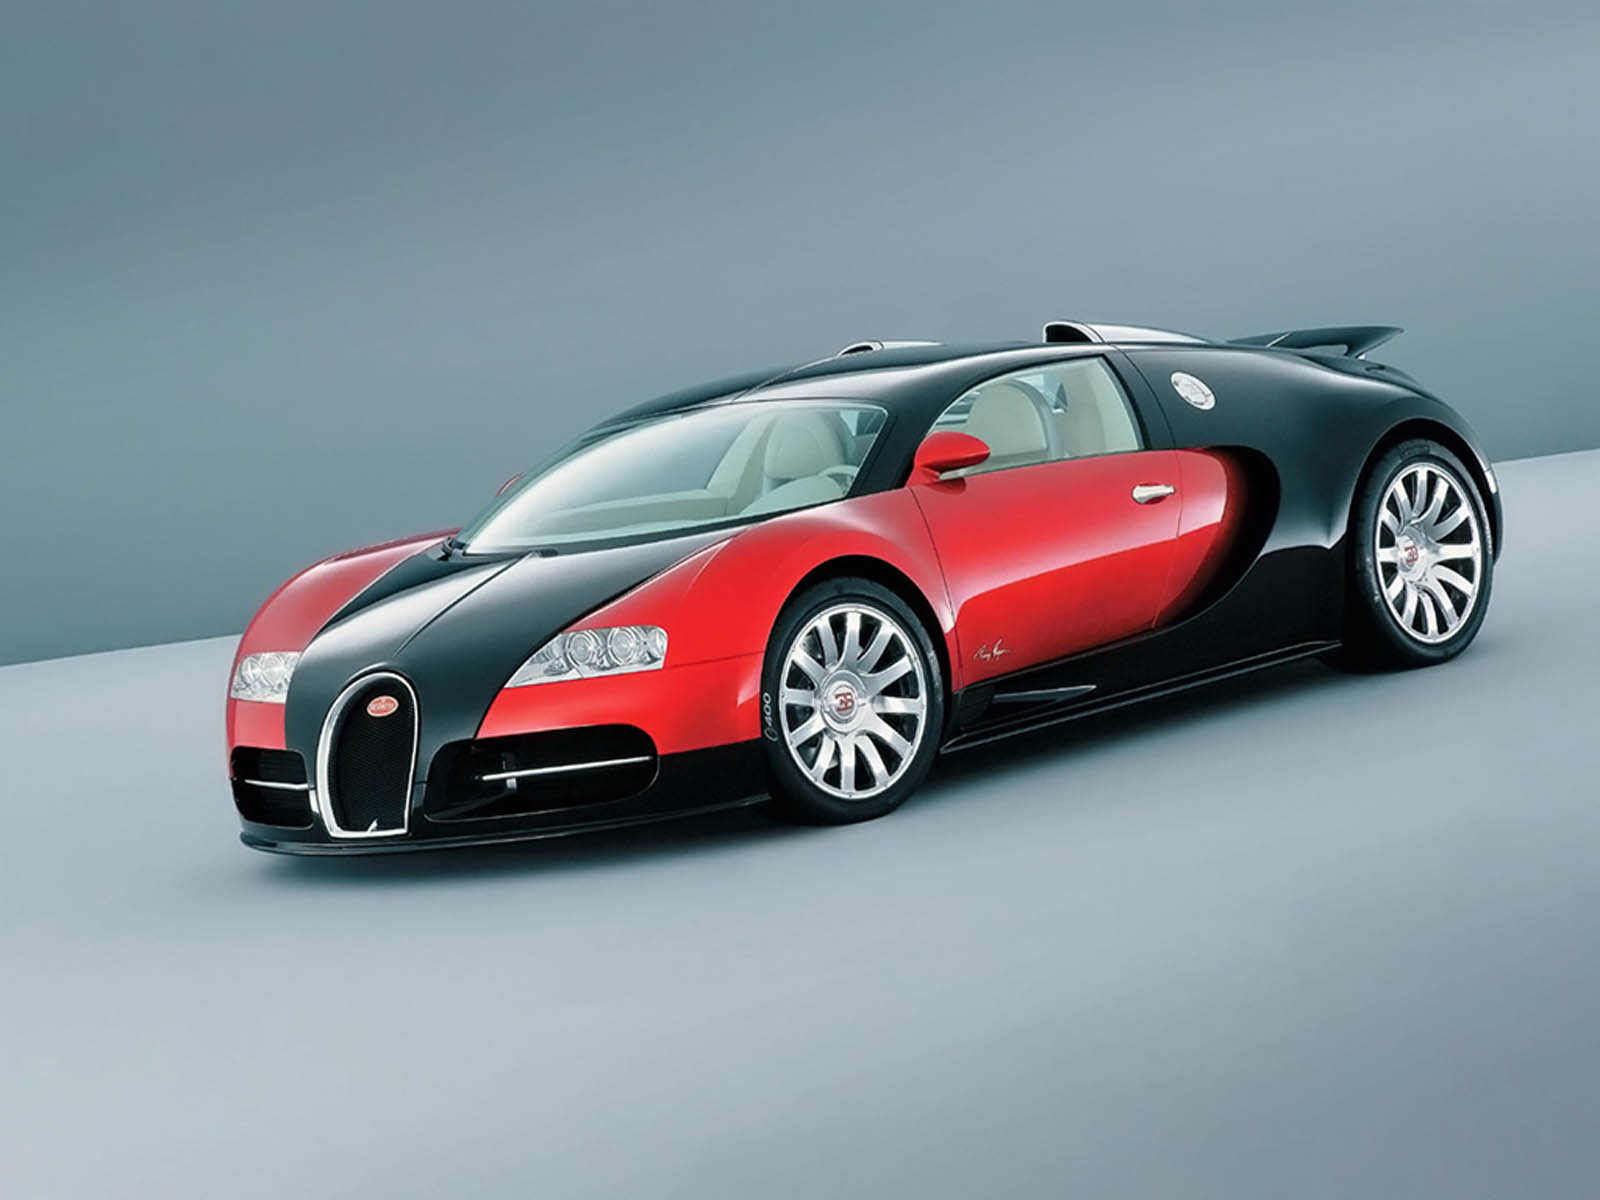 Hd Wallpaper Car And Bike Download Wallpapers Bugatti Veyron